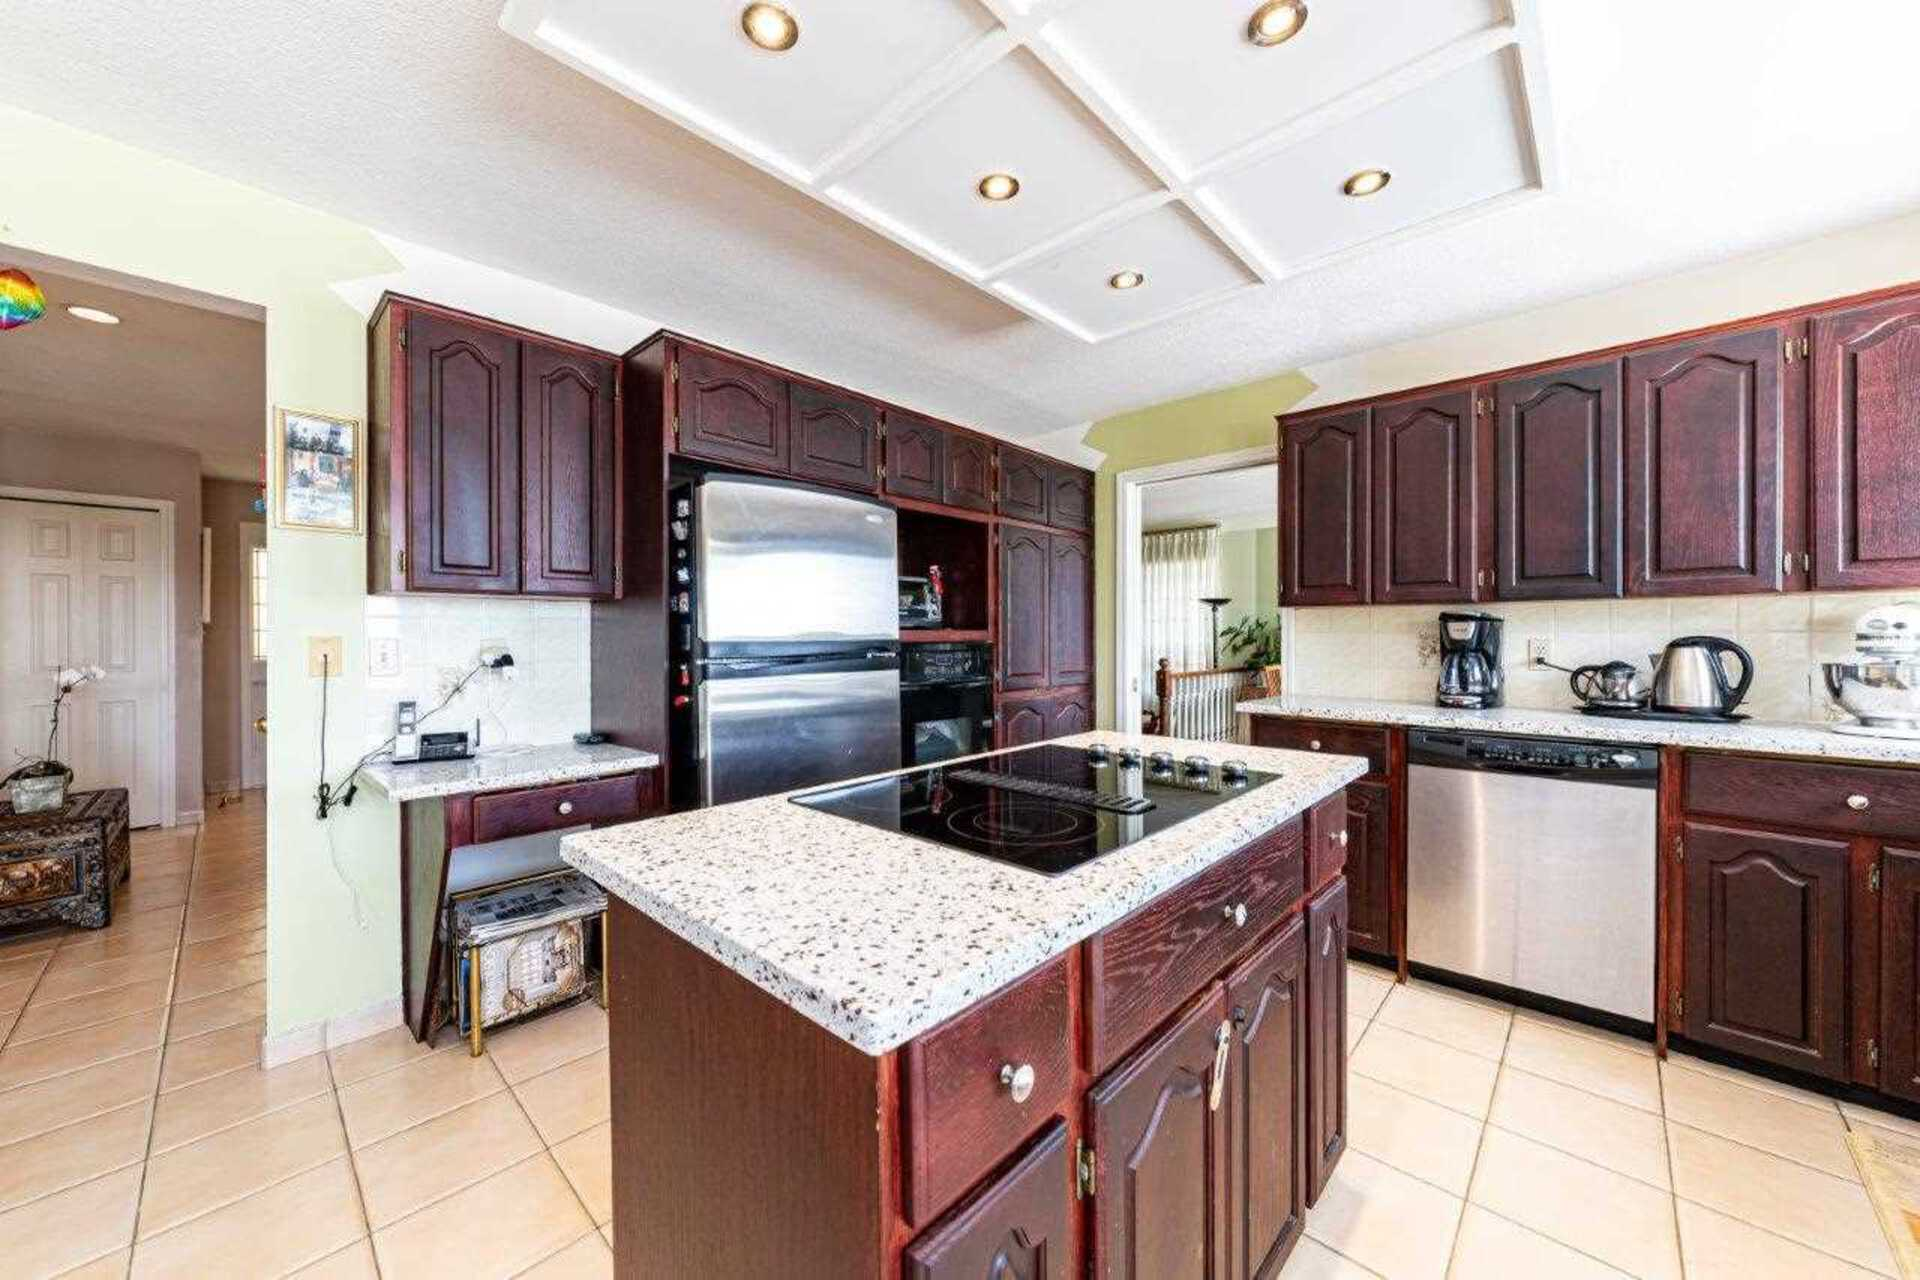 509-tempe-crescent-upper-lonsdale-north-vancouver-14 at 509 Tempe Crescent, Upper Lonsdale, North Vancouver